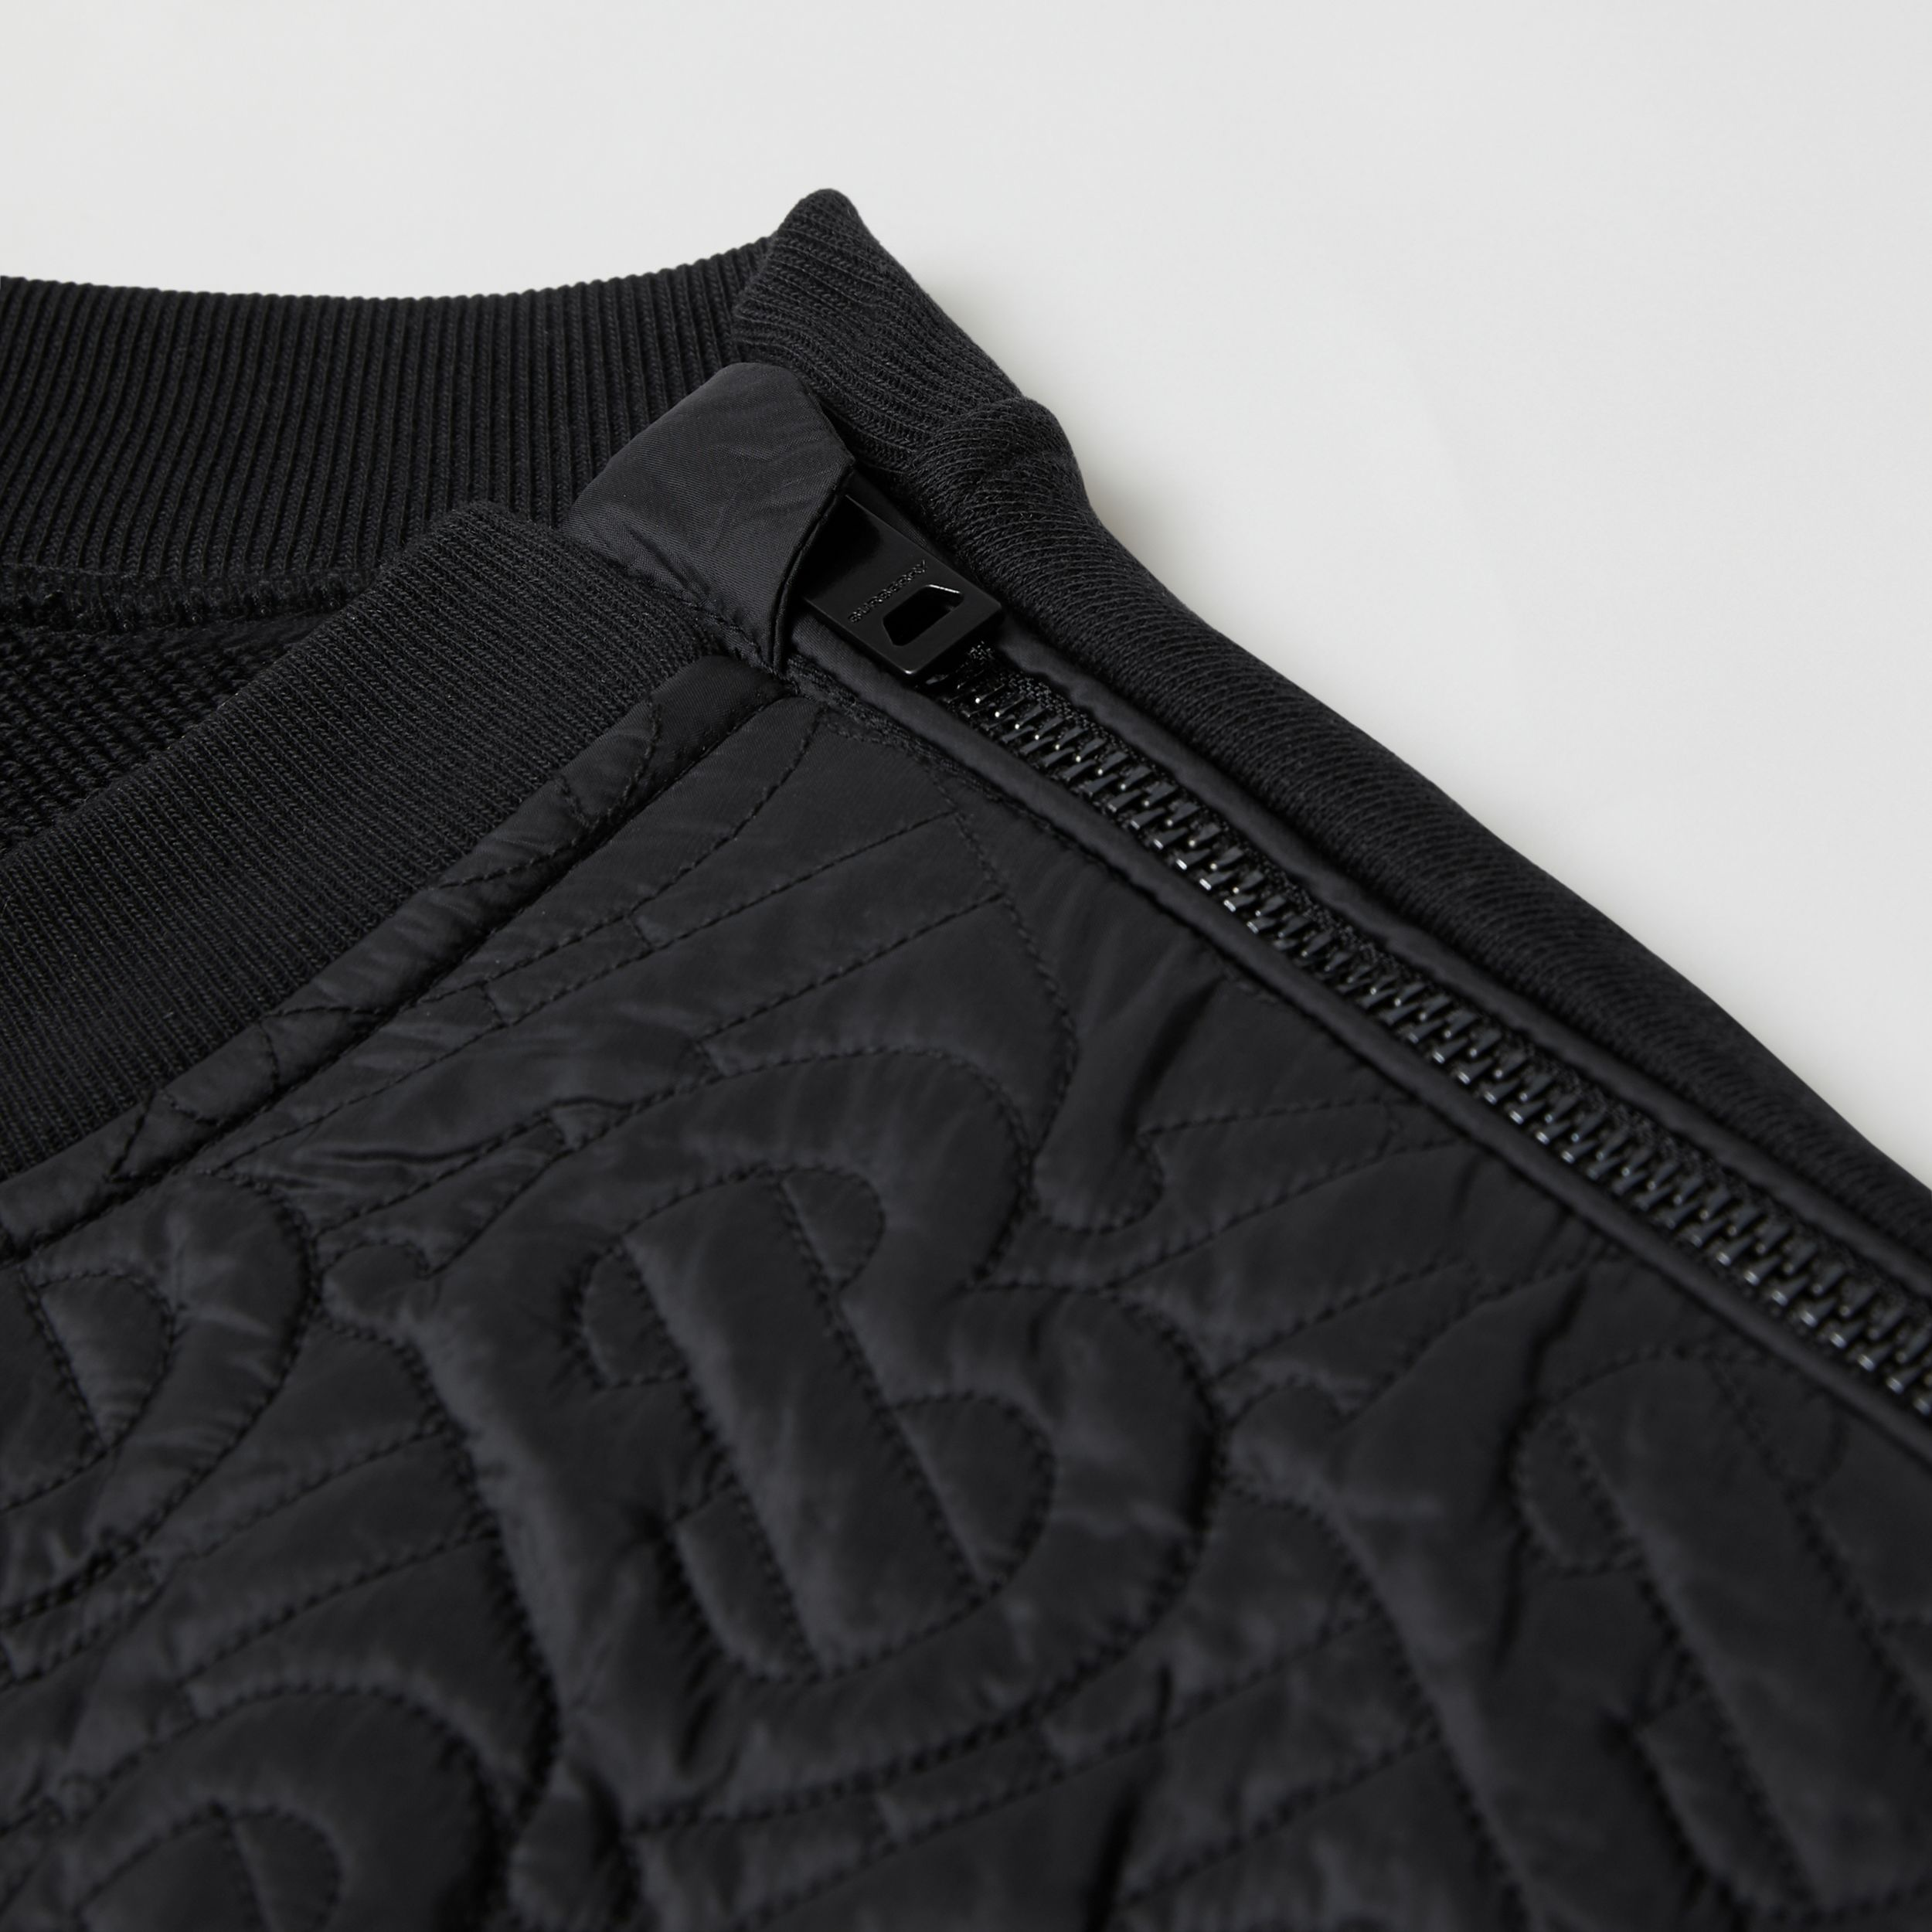 Monogram Quilted Panel Cotton Sweatshirt in Black | Burberry Australia - 2